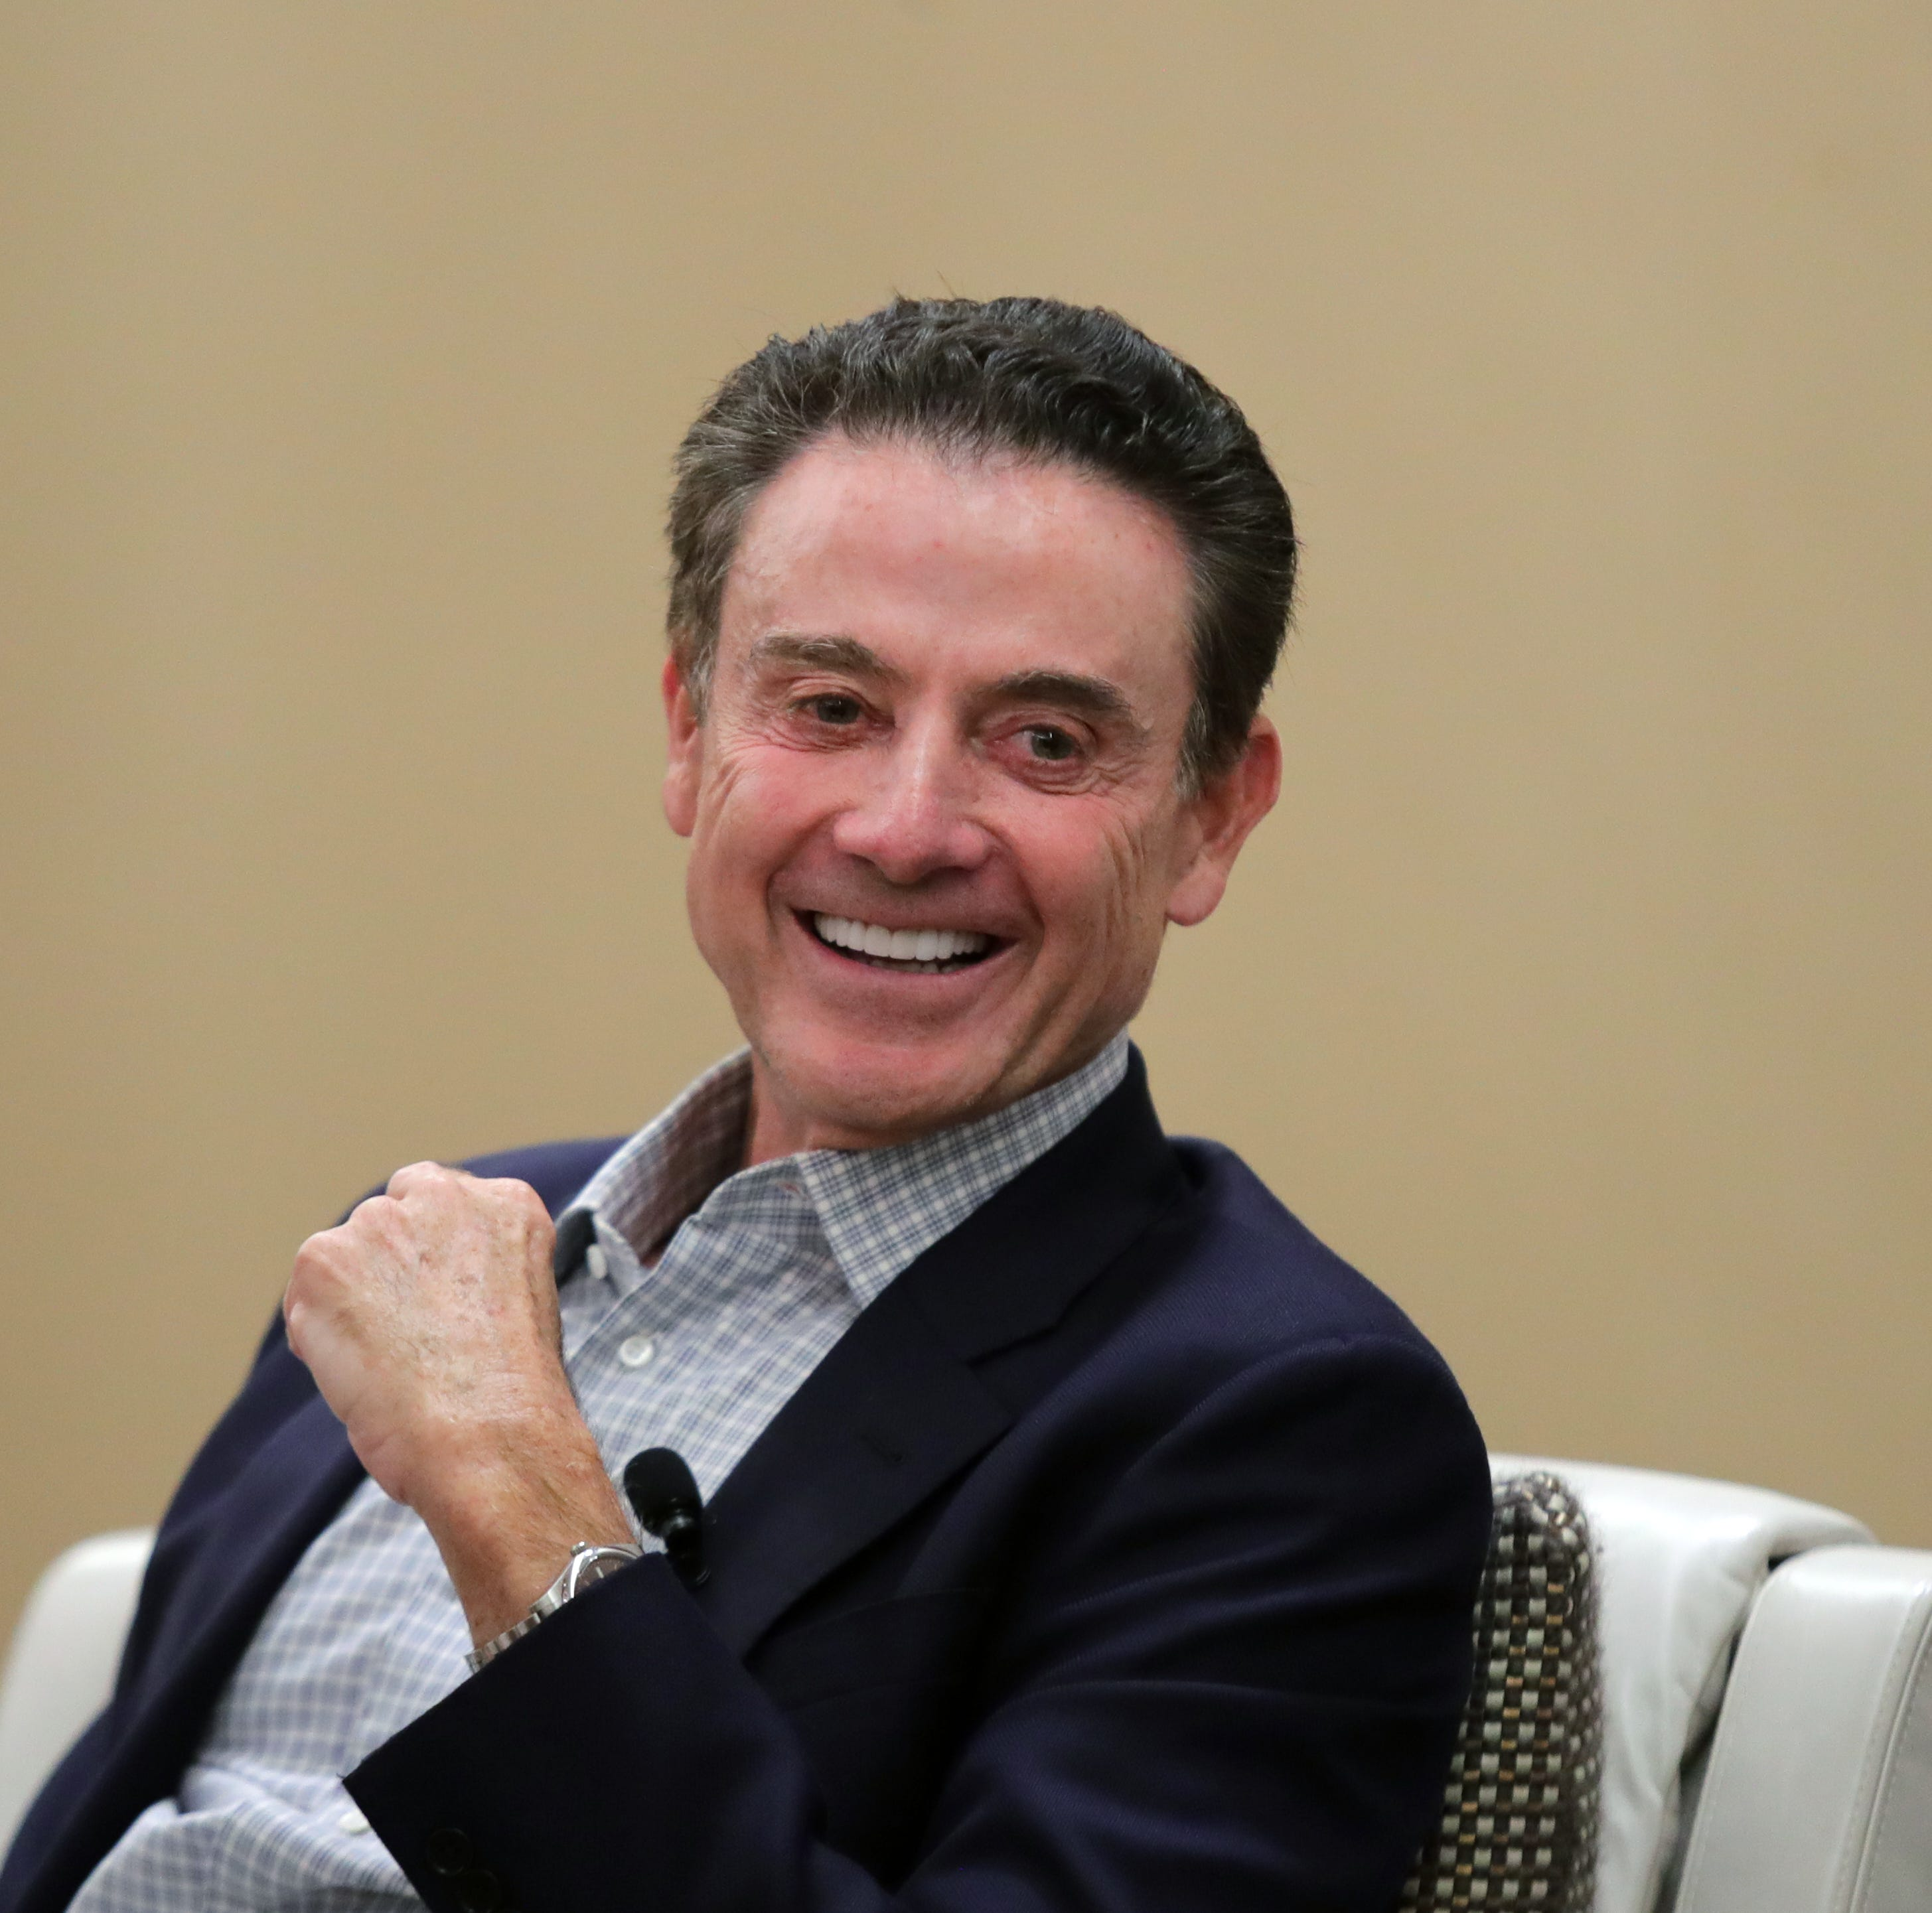 Rick Pitino's denials supported by new evidence in college basketball trial